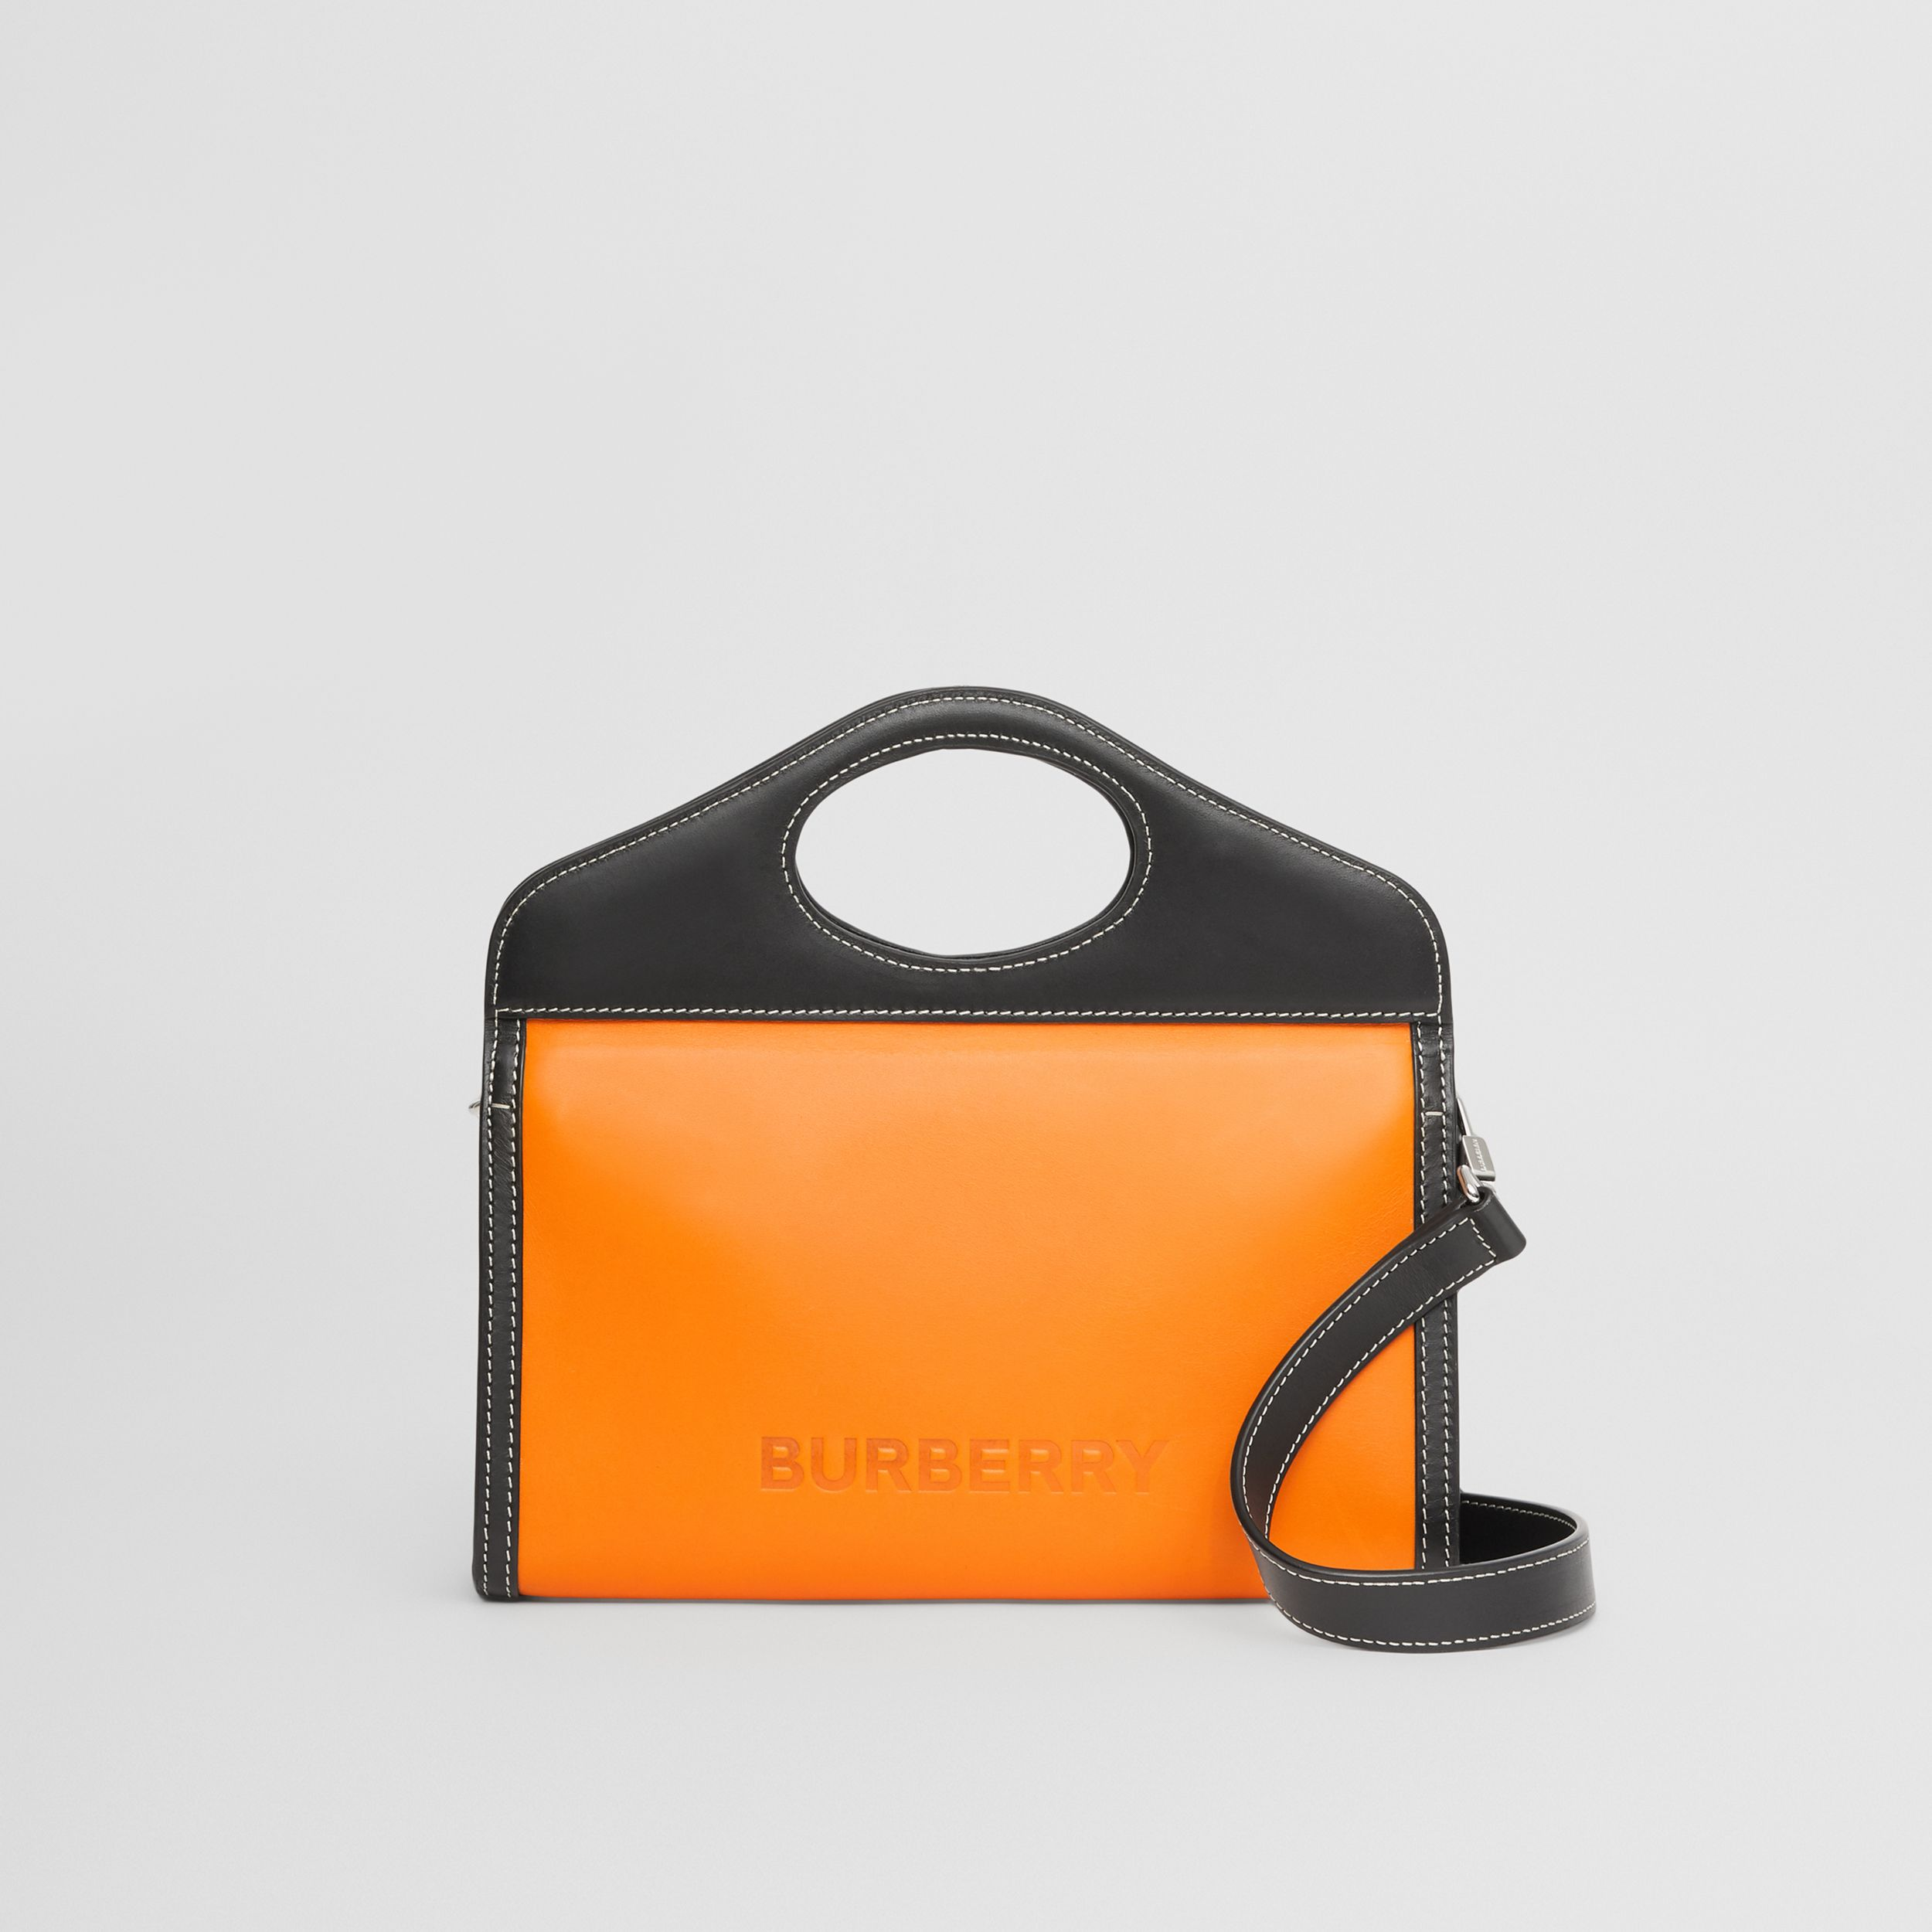 Two-tone Leather Foldover Pocket Bag in Deep Orange/black - Men | Burberry Australia - 3